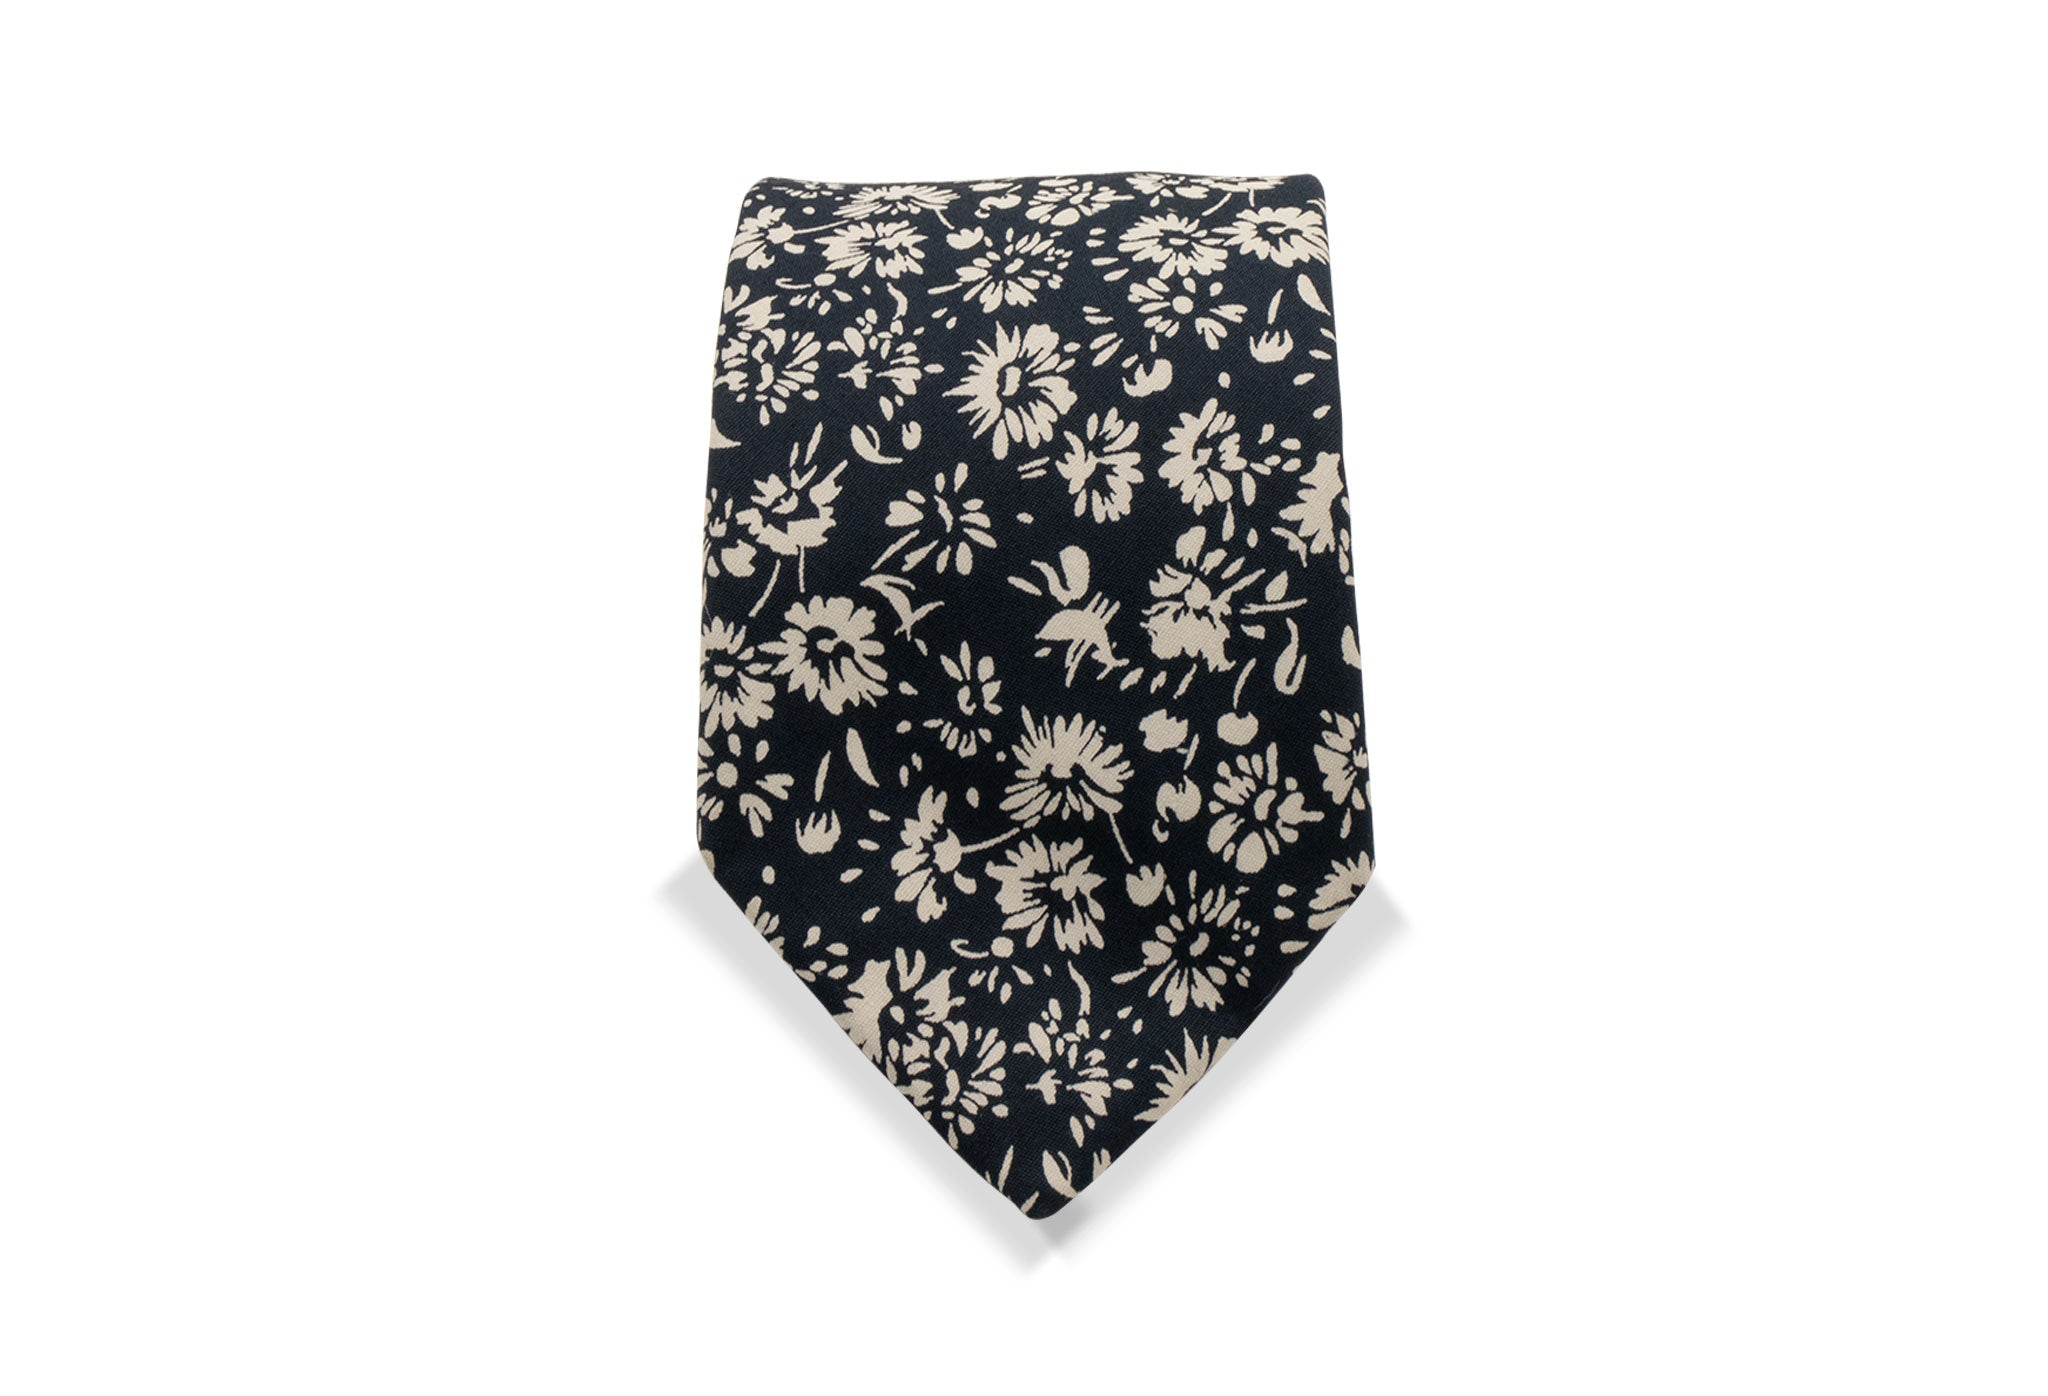 Nishimeya Japanese Cotton Tie & Pocket Square